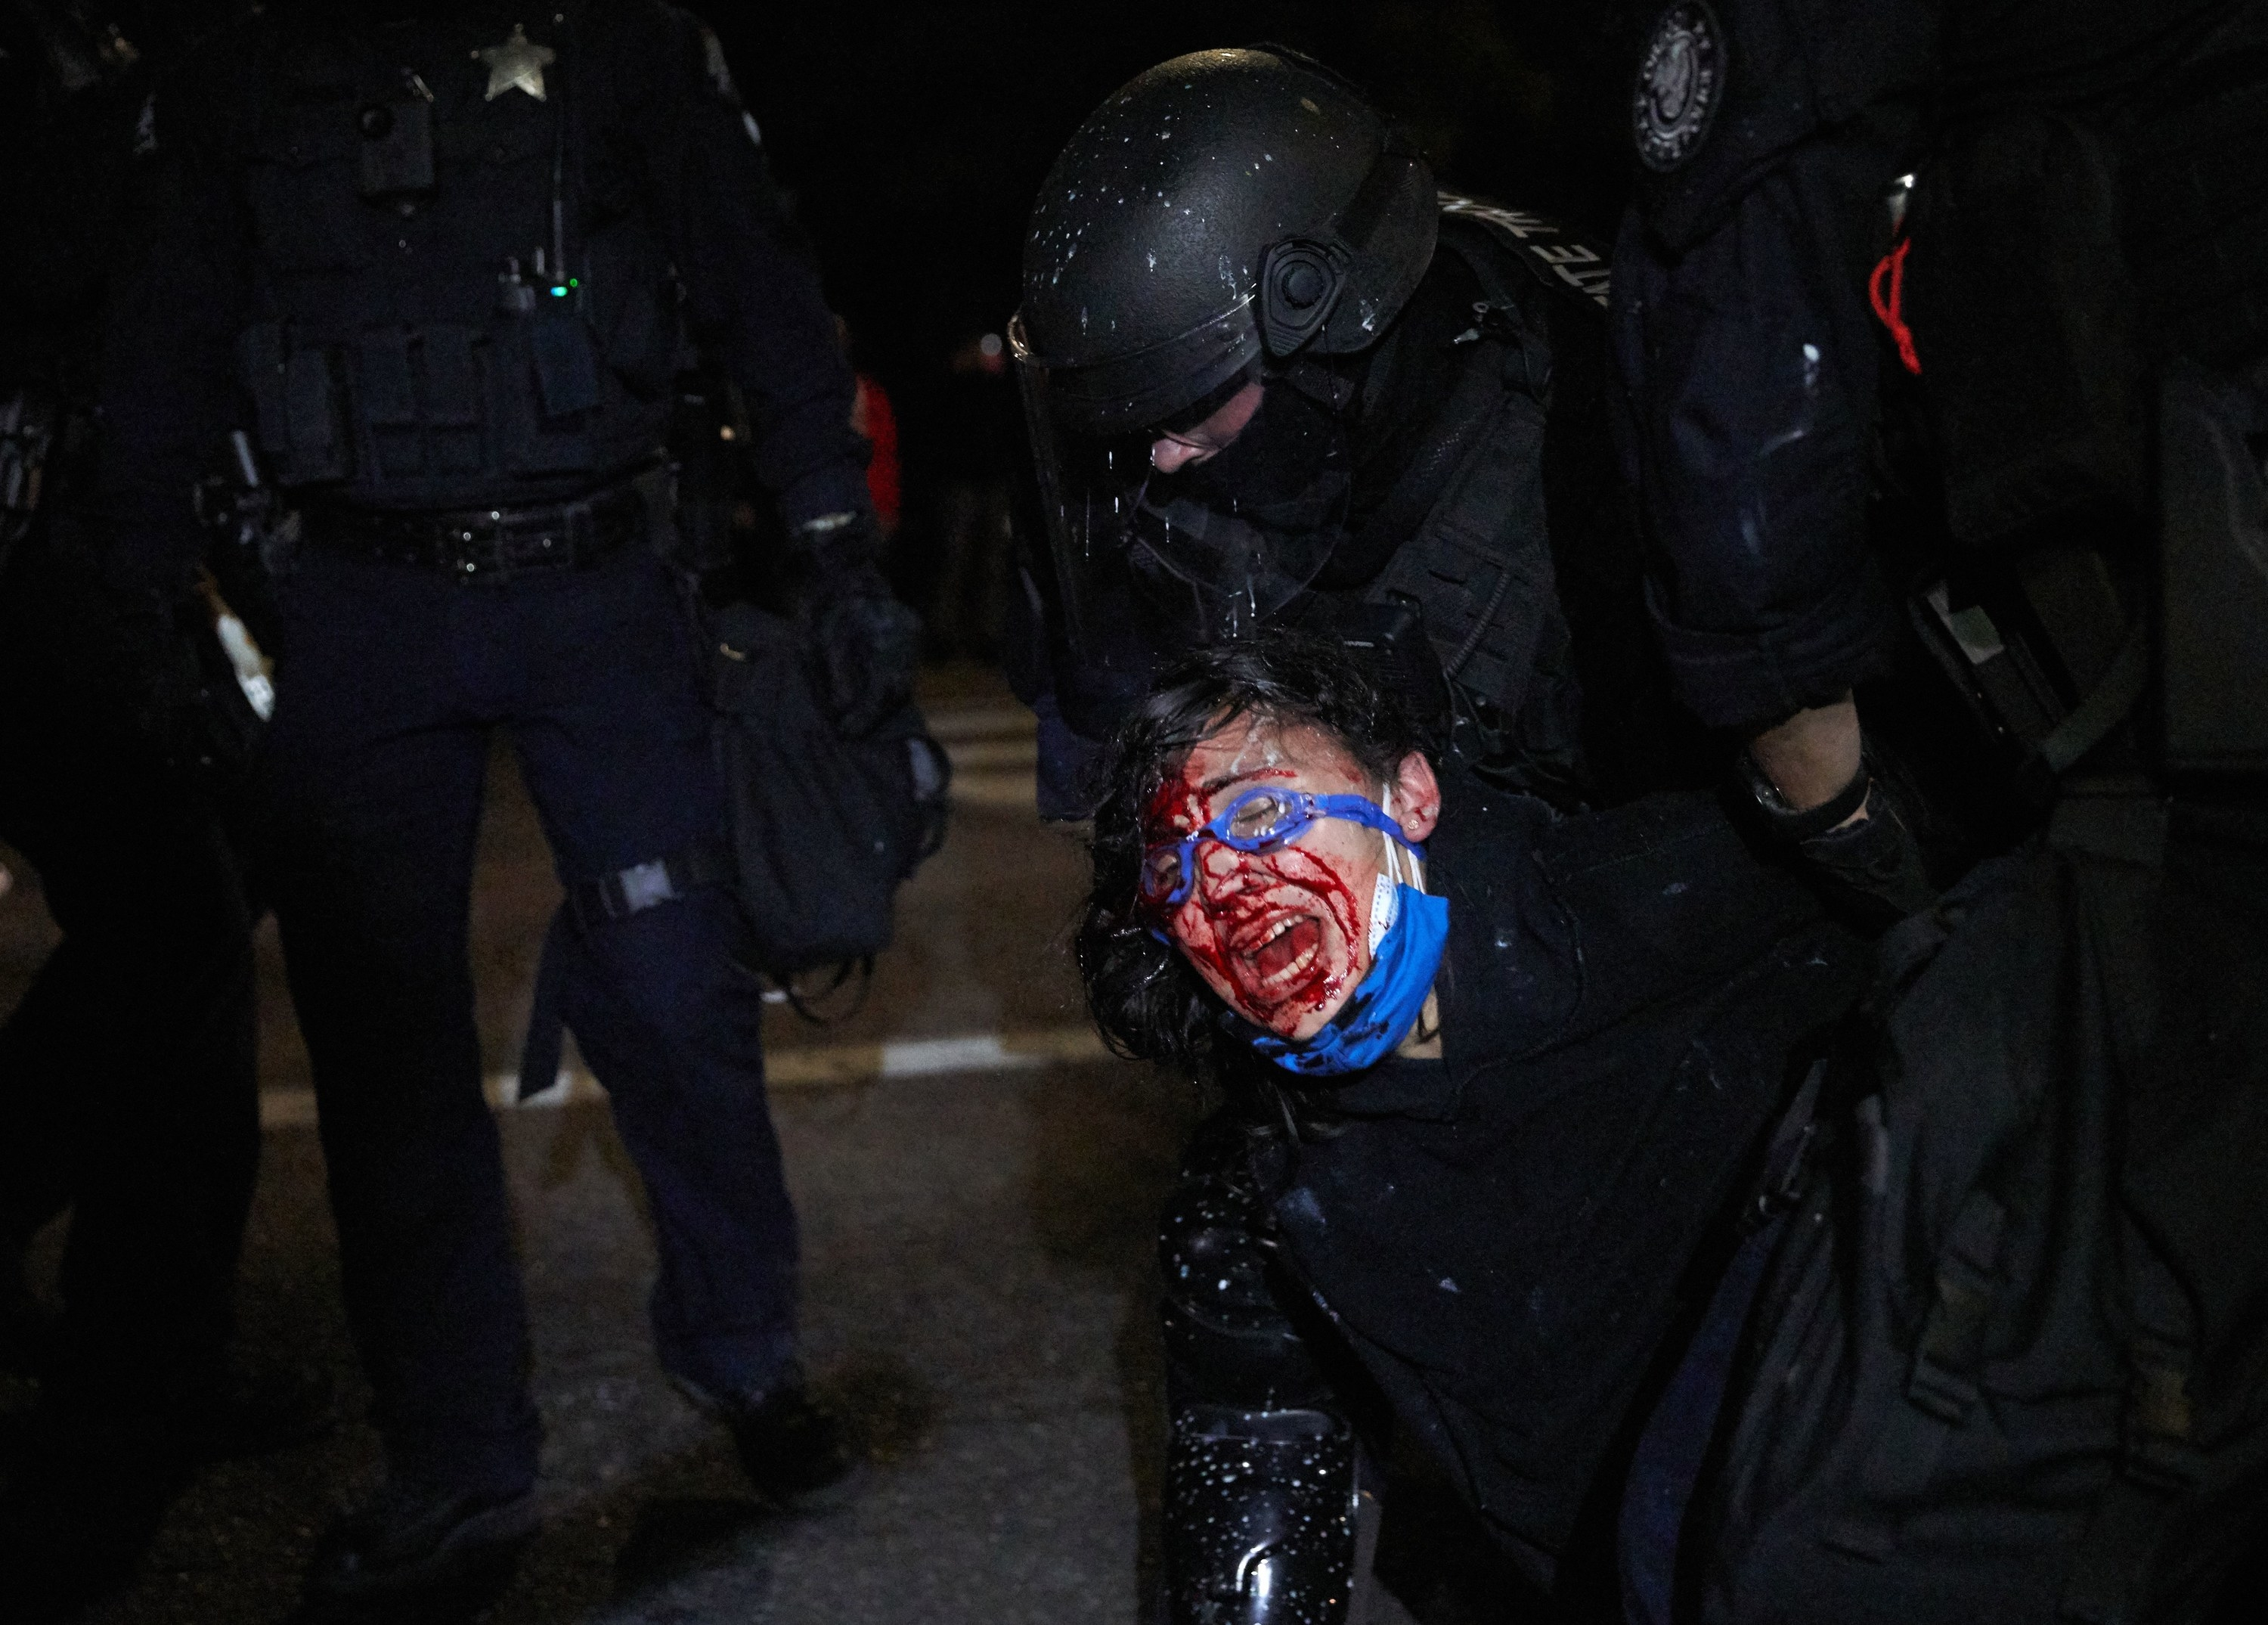 A protester wearing blue goggles shouts and bleeds from the face as a police officer clad in black holds them down